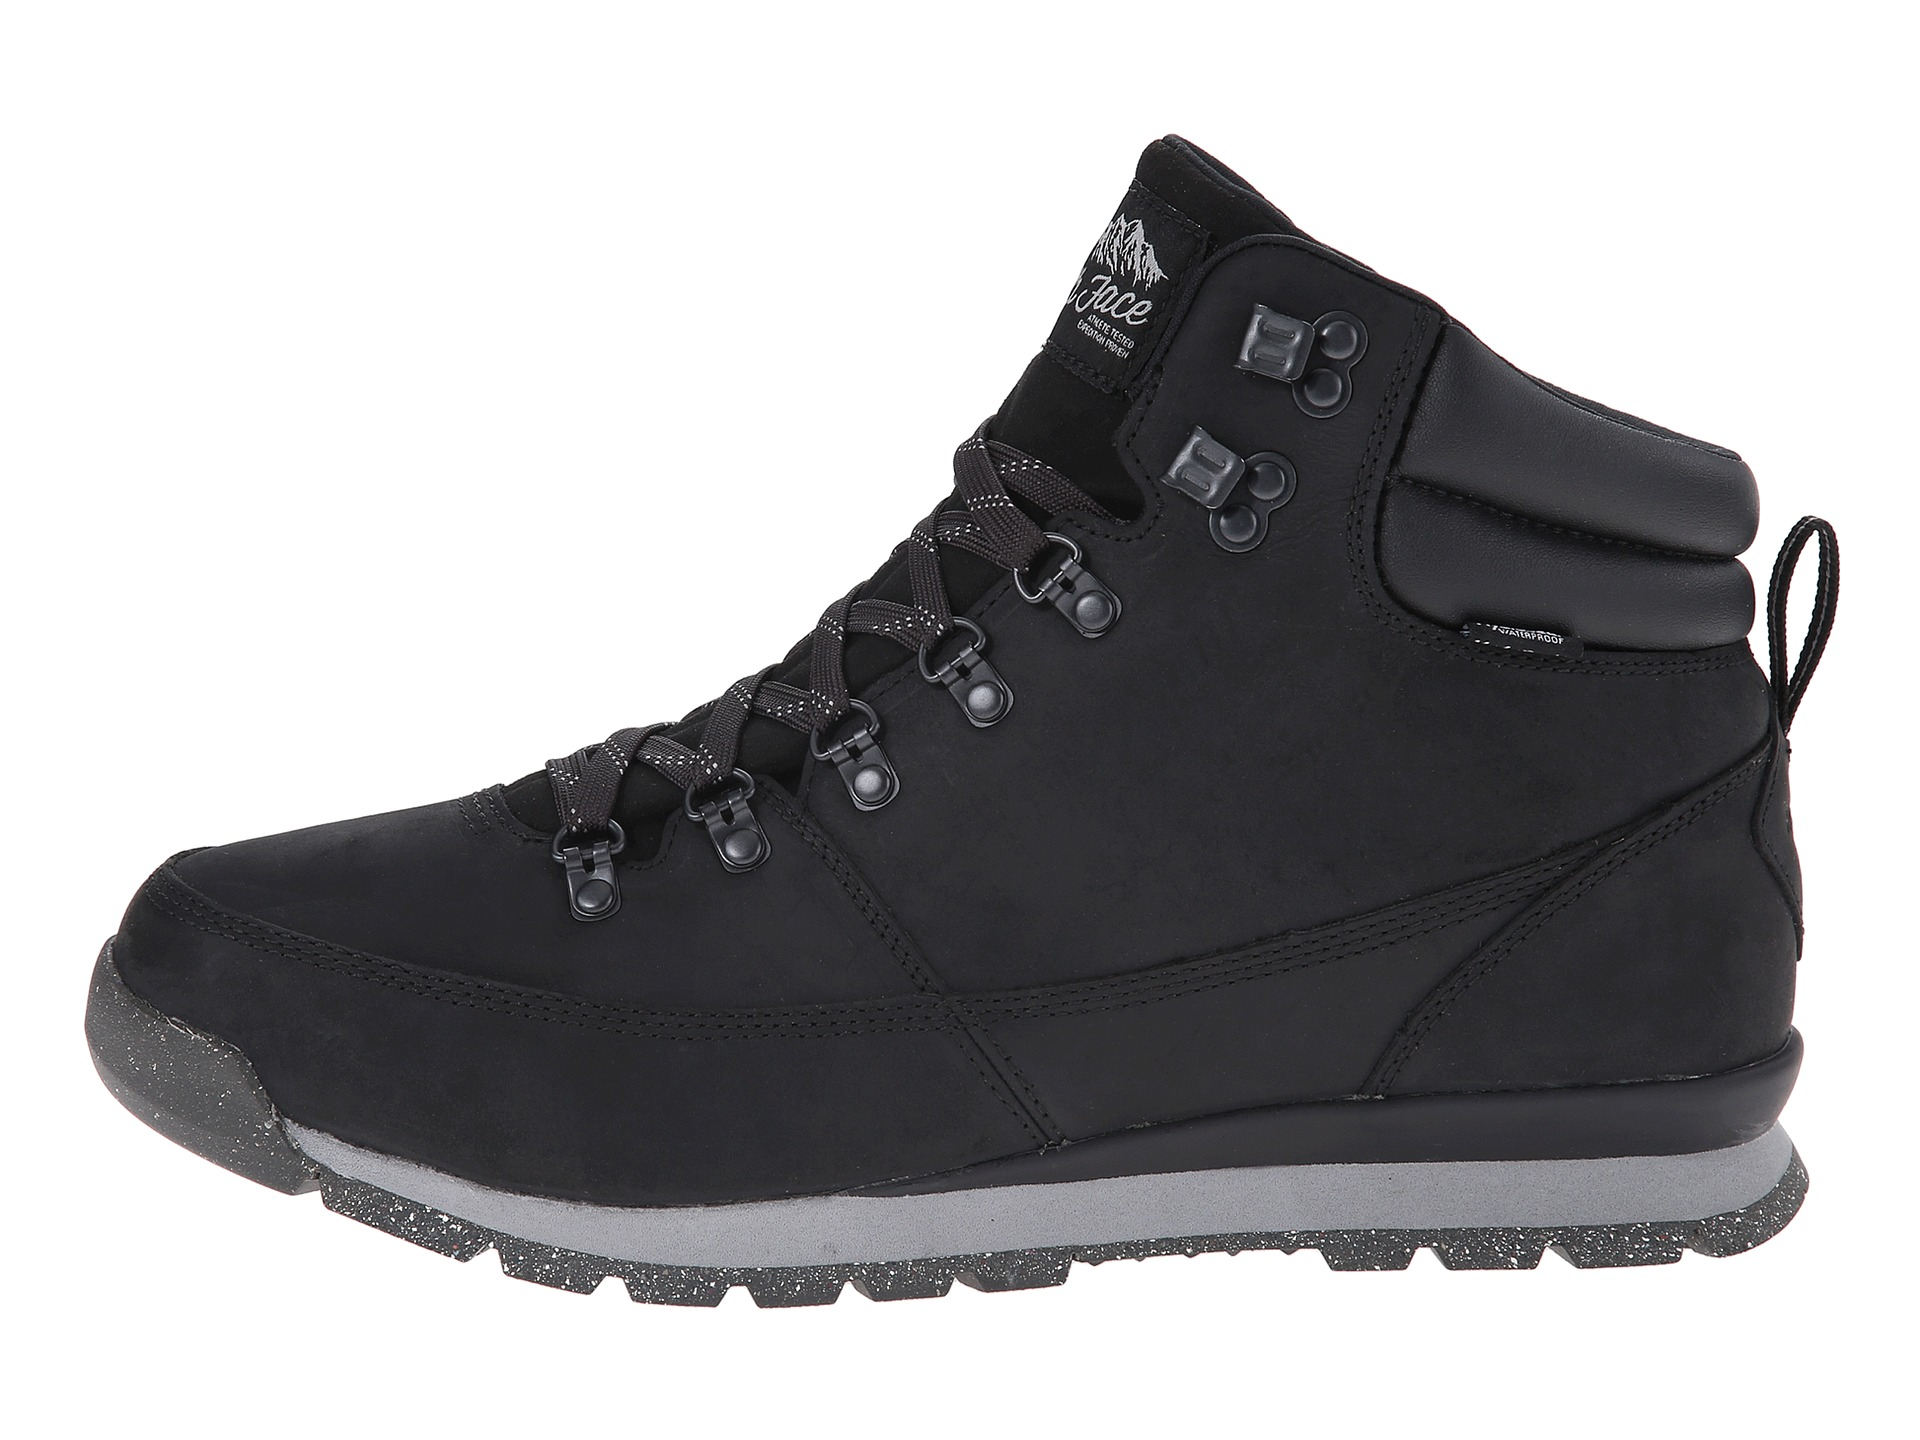 Product Features Keep warm and stay stylish with the Nuptse Purna boot from The North Face.